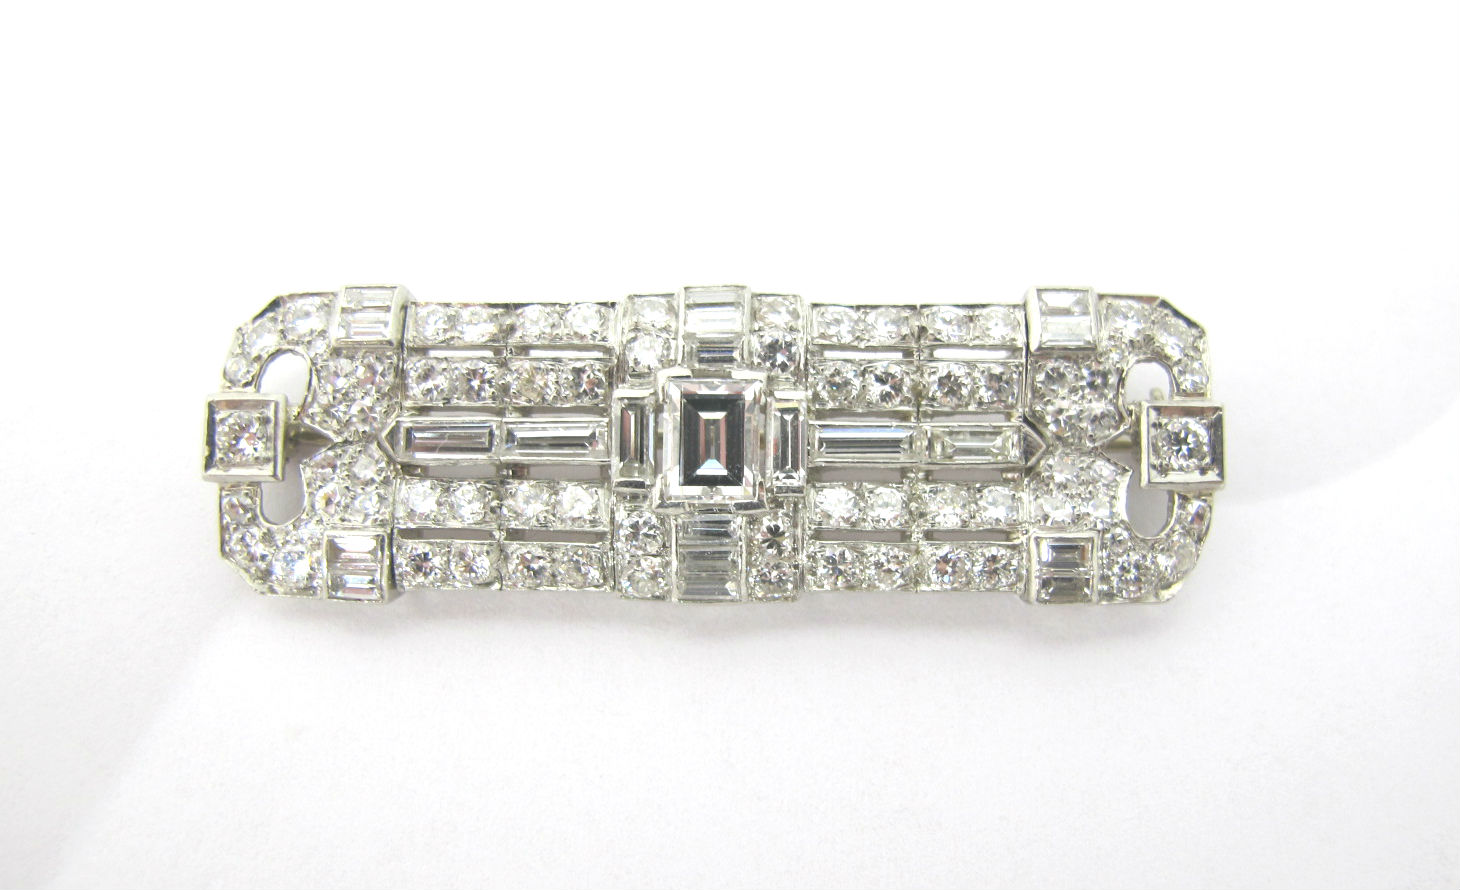 Art Deco diamond bar brooch, currently available in our online shop!